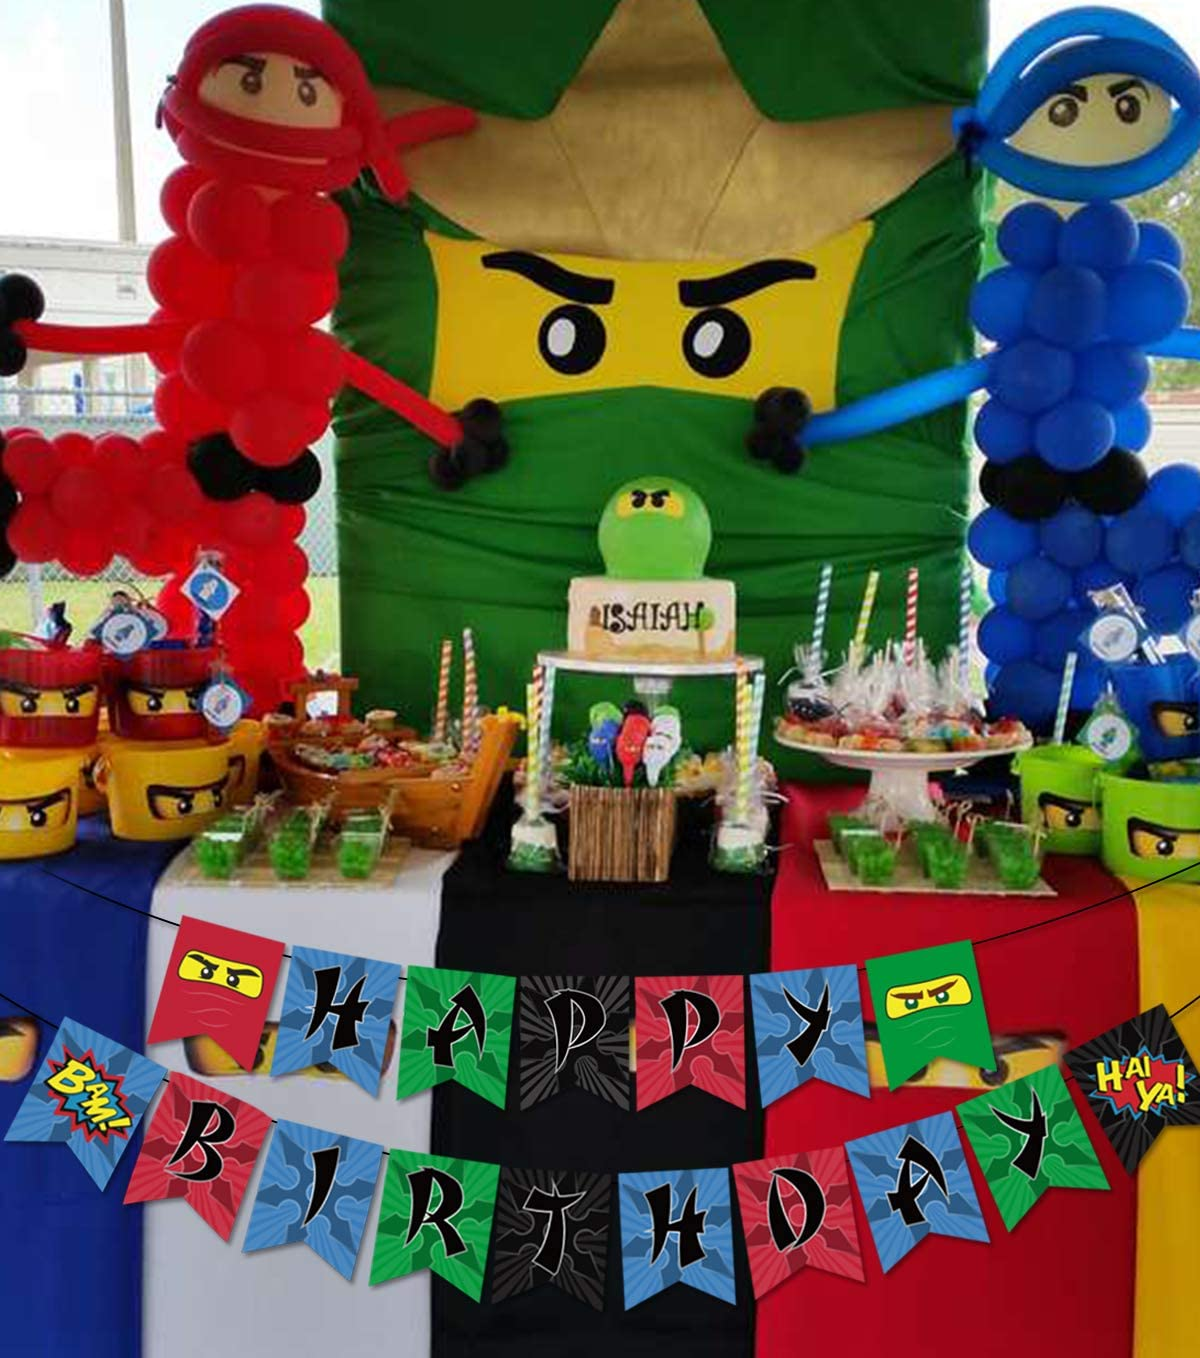 Ninja Happy Birthday Banner Birthday Party Decorations Ninja Party Supplies for Boys Ninja Warrior Party Supplies